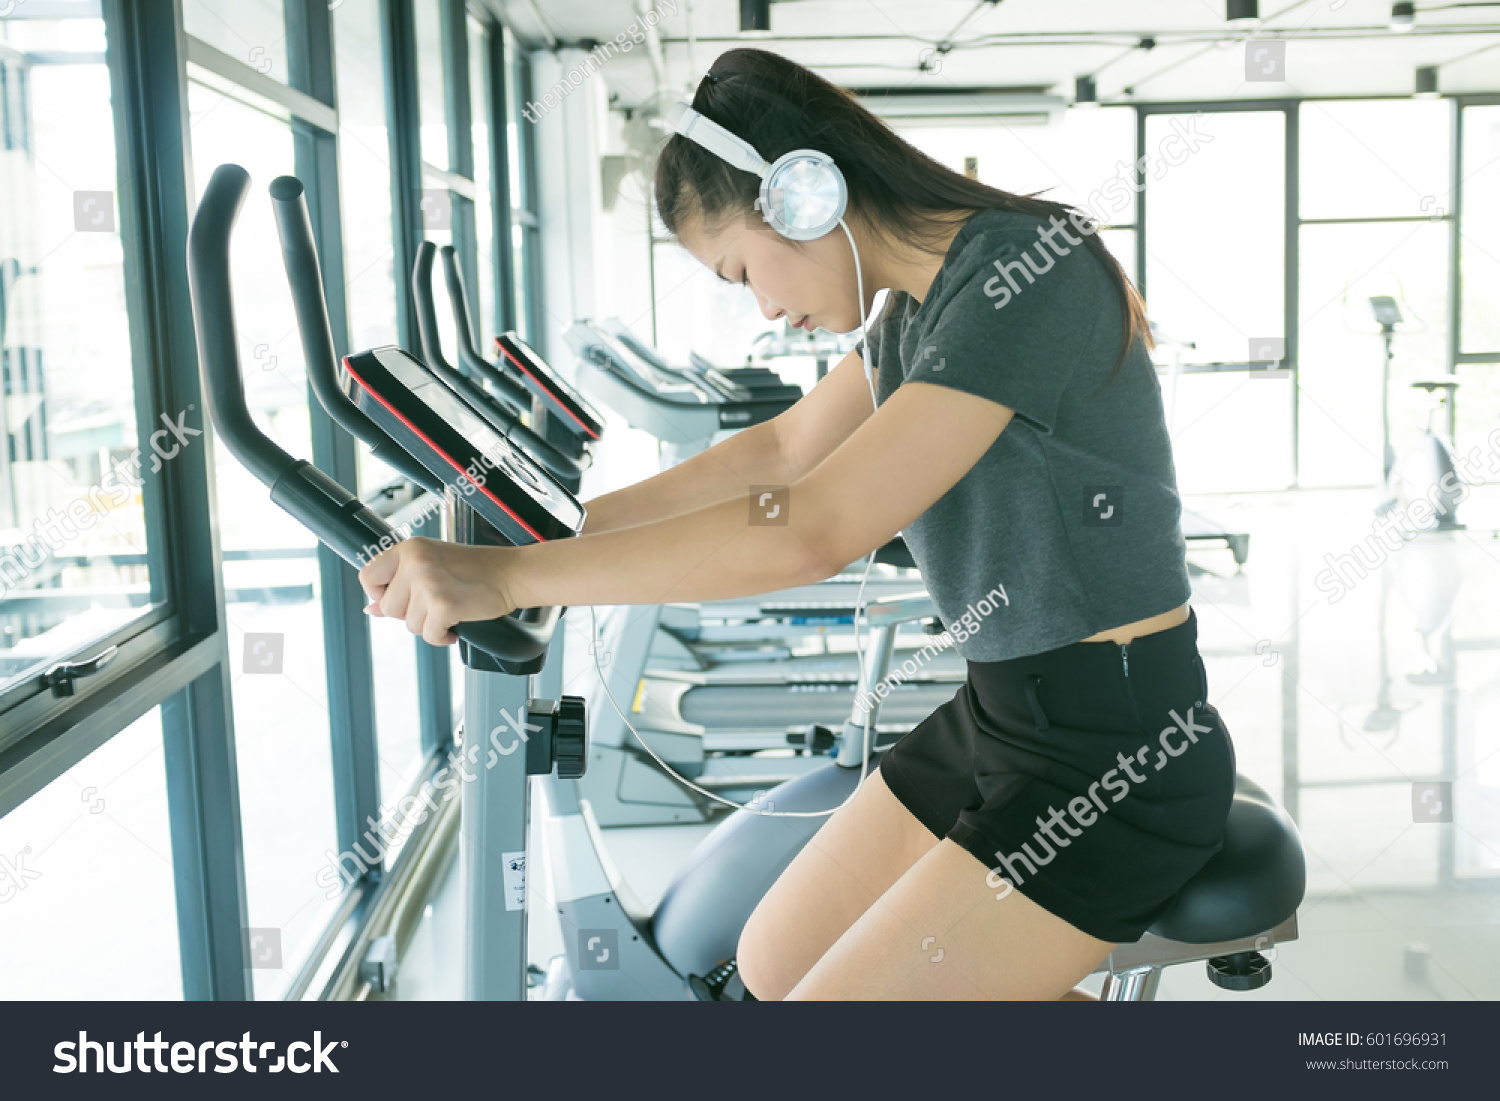 Image Result For Music Gym